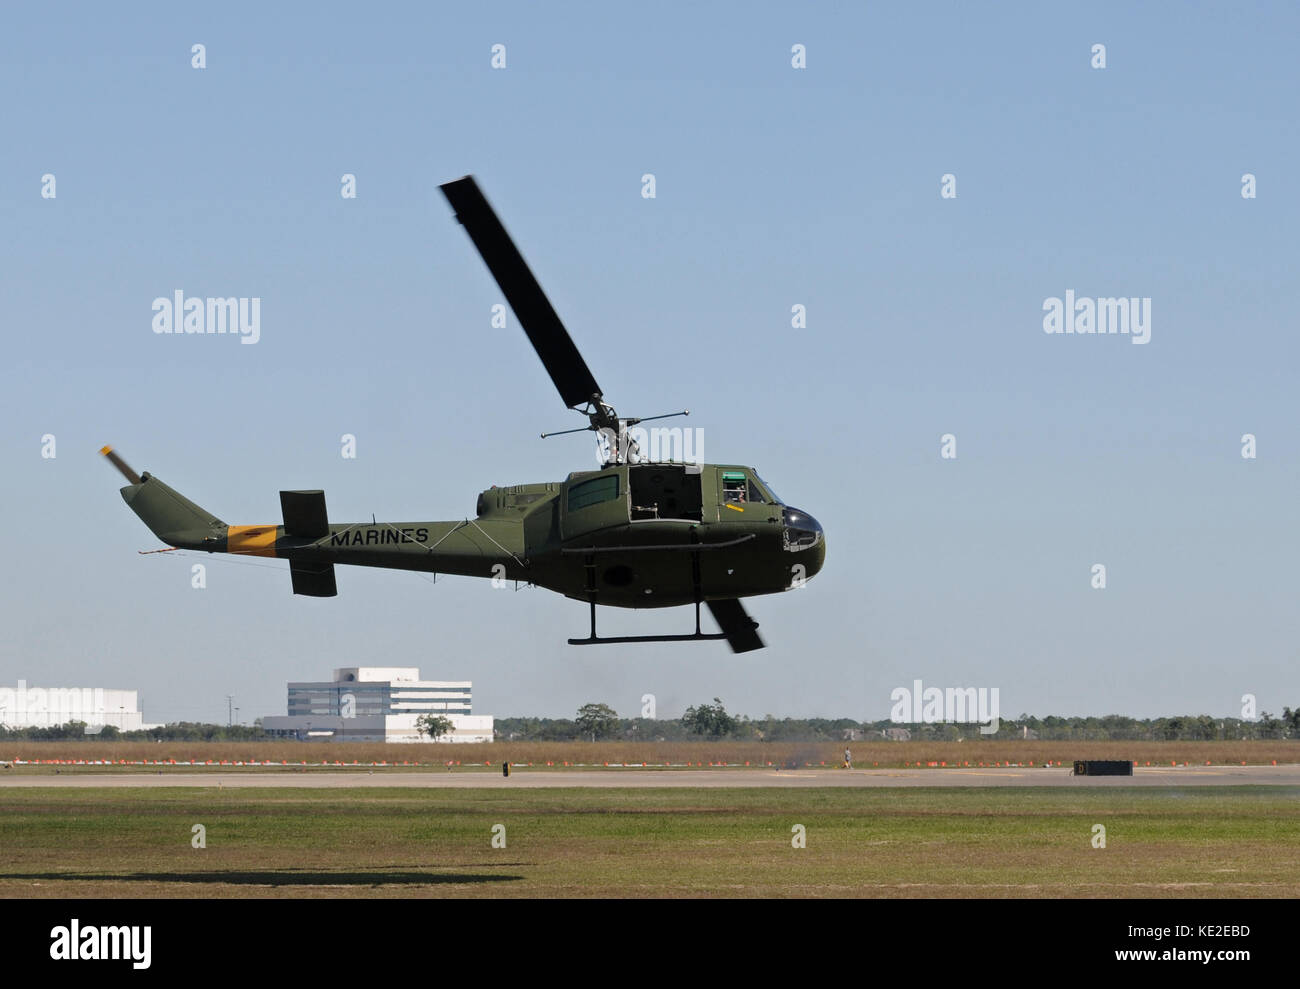 Elicottero Hovering : Vietnam huey stock photos images alamy